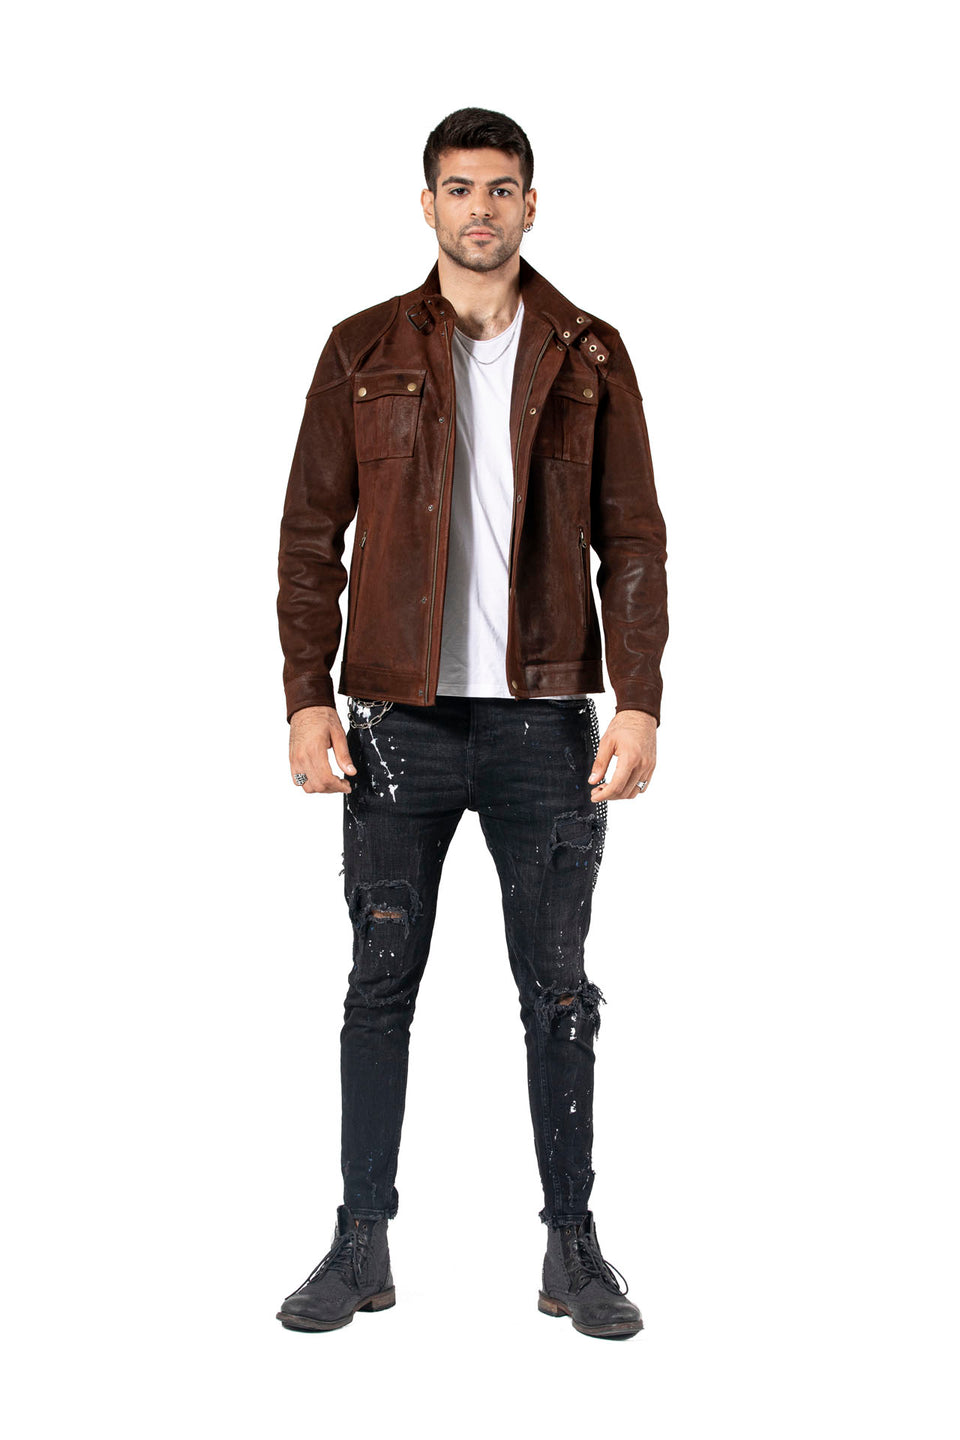 Oliver Genuine Leather Jacket For Men's